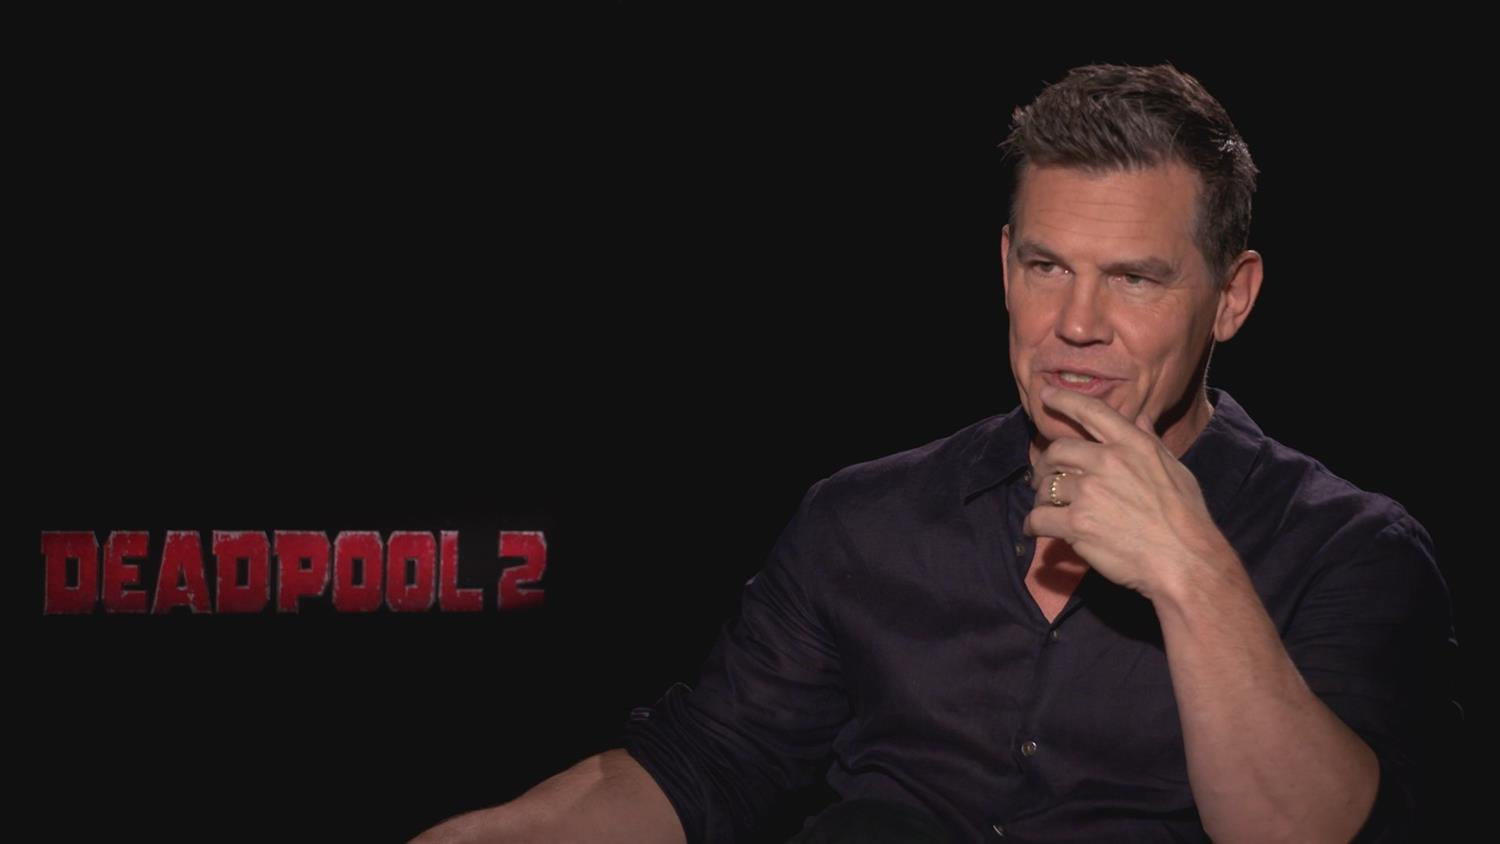 Deadpool 2's Josh Brolin On Why He Wants To Play Cable For Multiple Movies